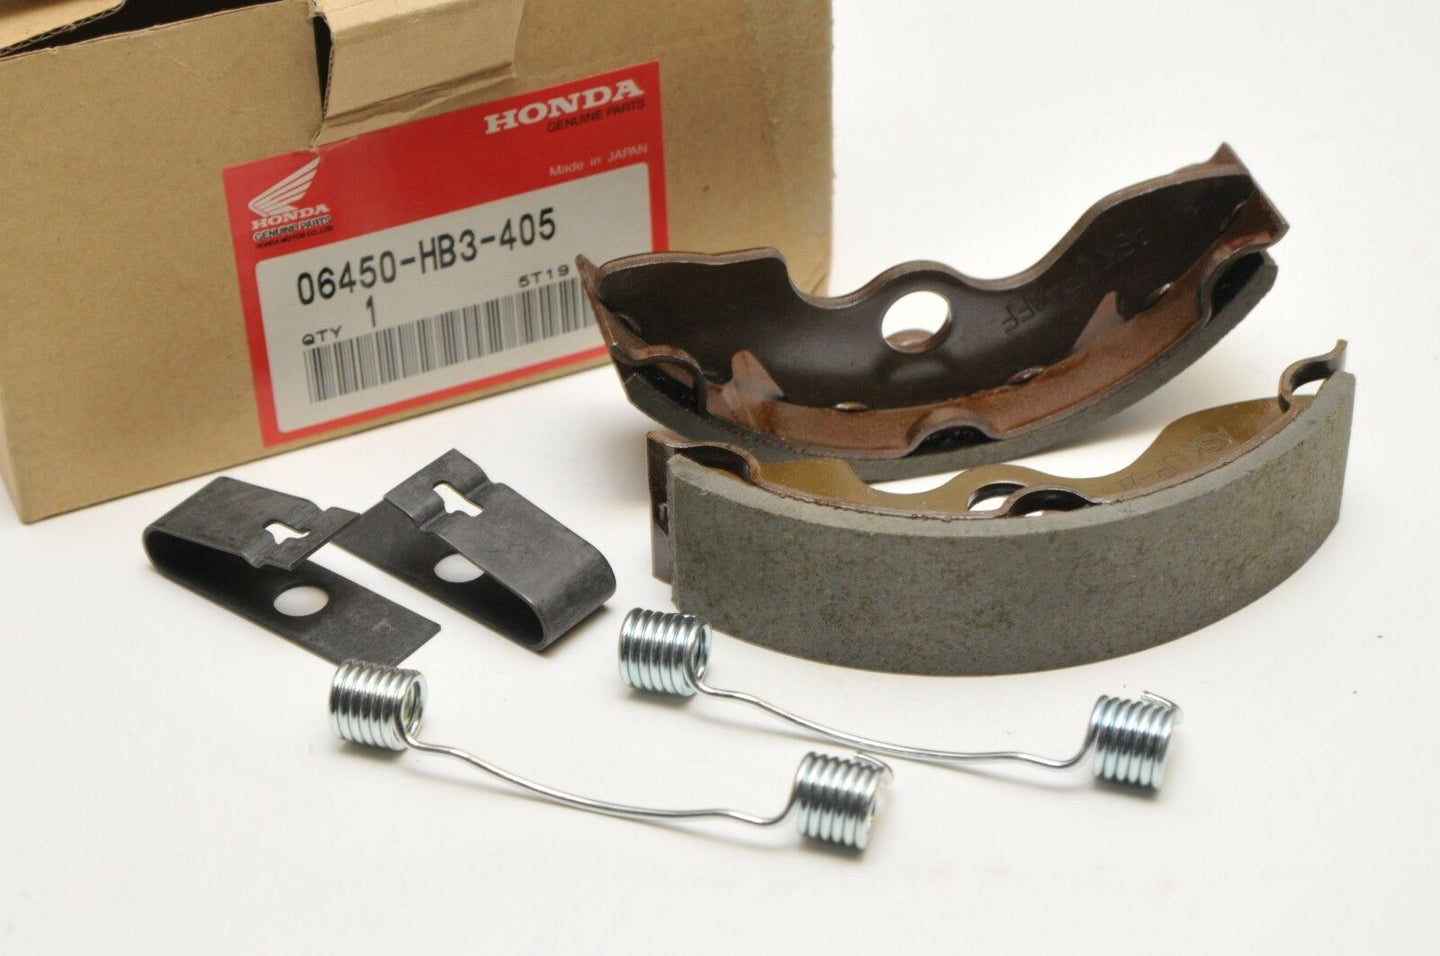 NEW NOS OEM HONDA 06450-HB3-405 BRAKE SHOE SET TRX300 FOURTRAX 300